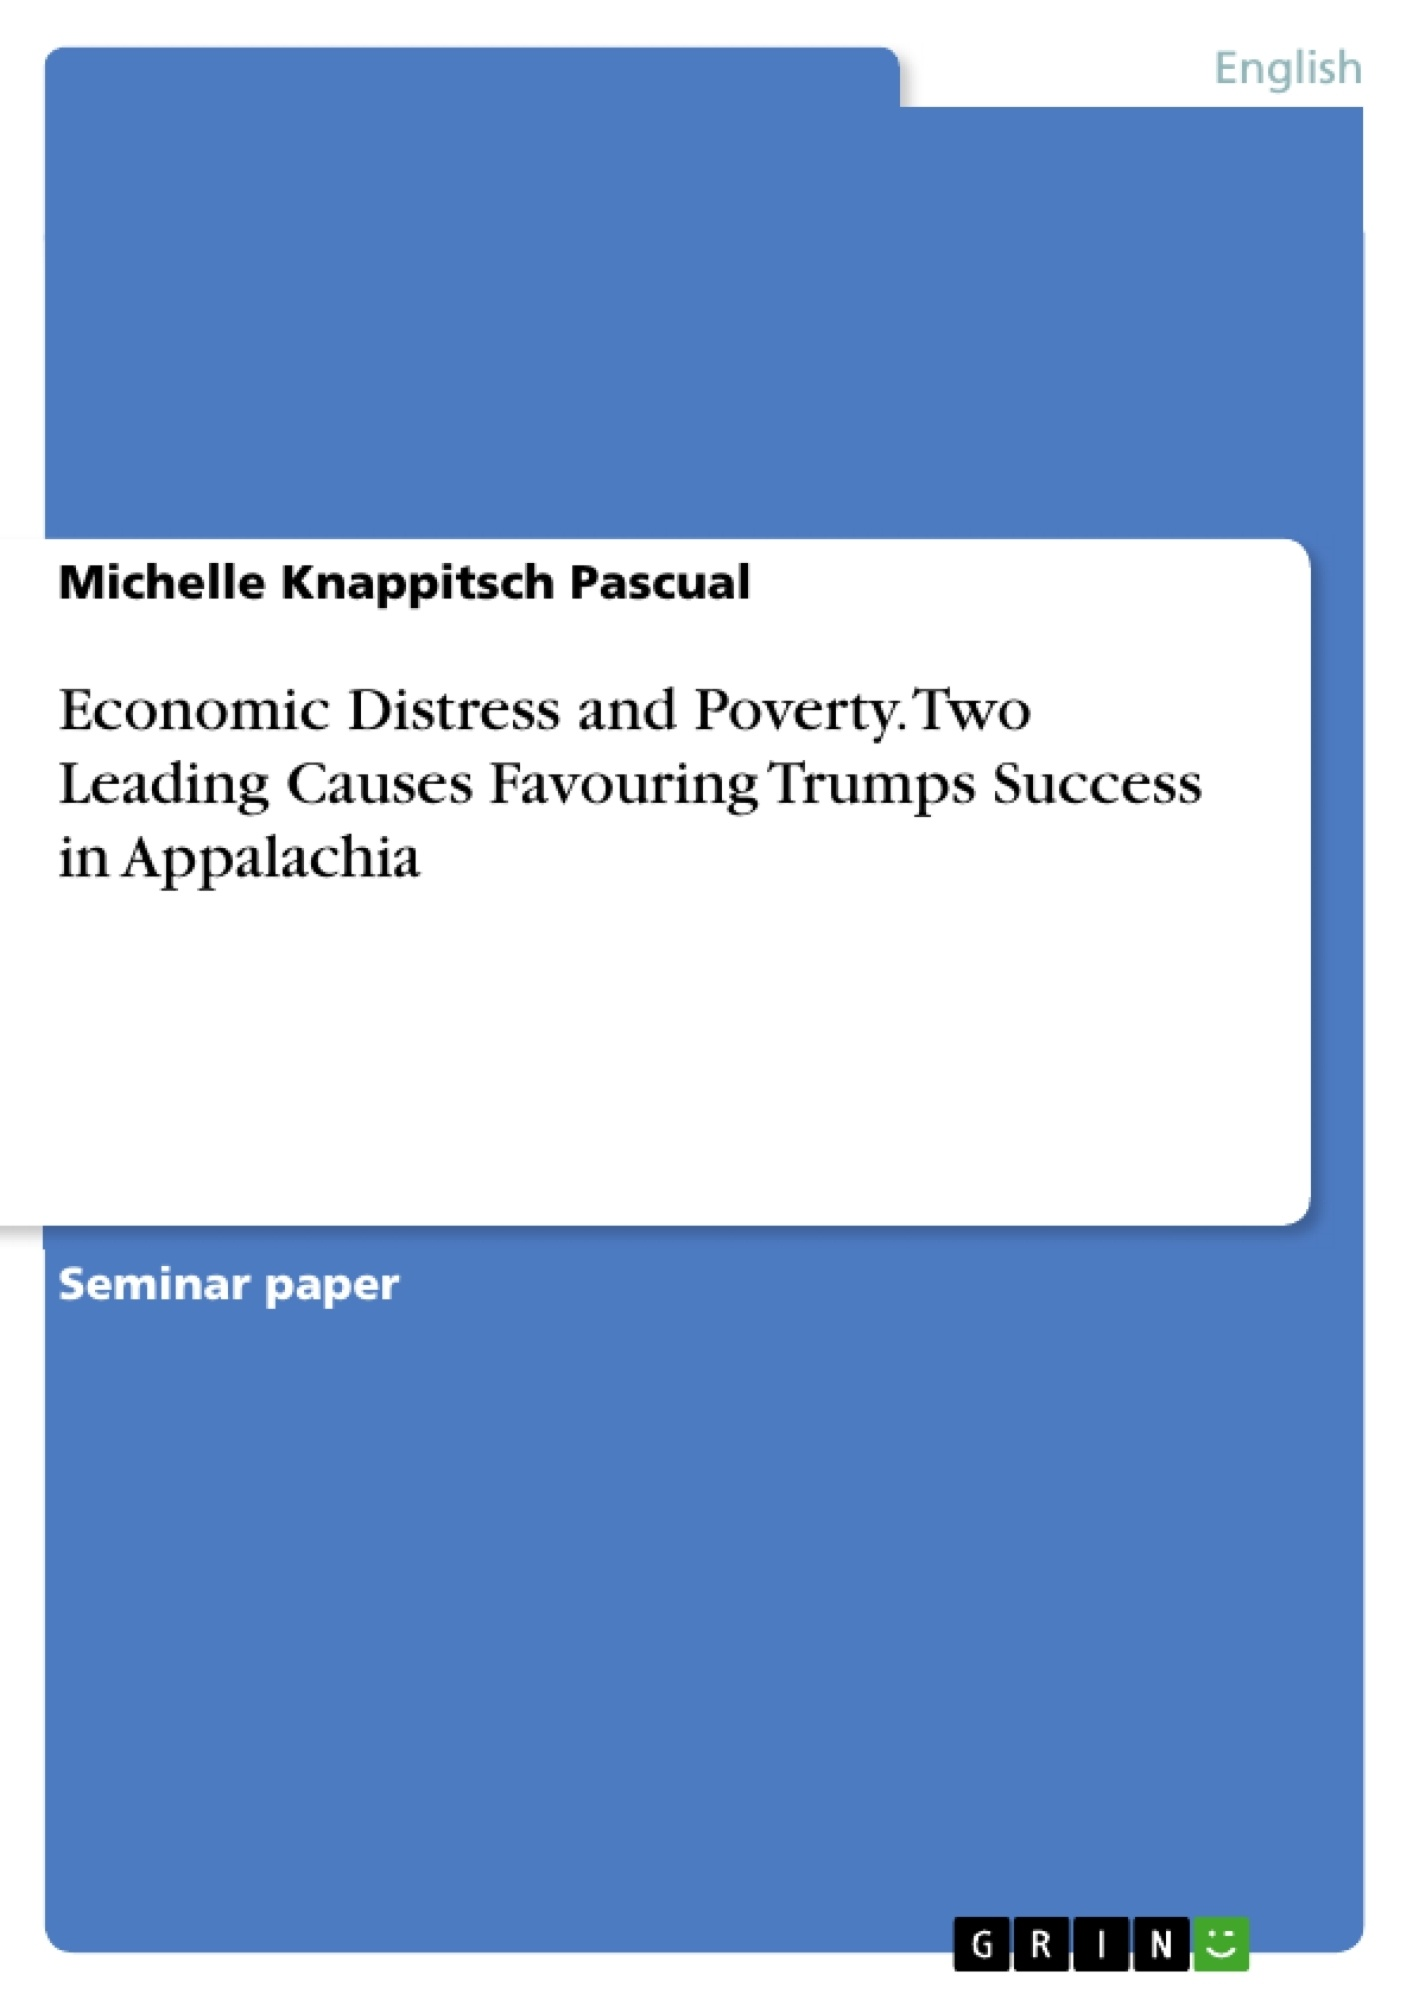 Title: Economic Distress and Poverty. Two Leading Causes Favouring Trumps Success in Appalachia